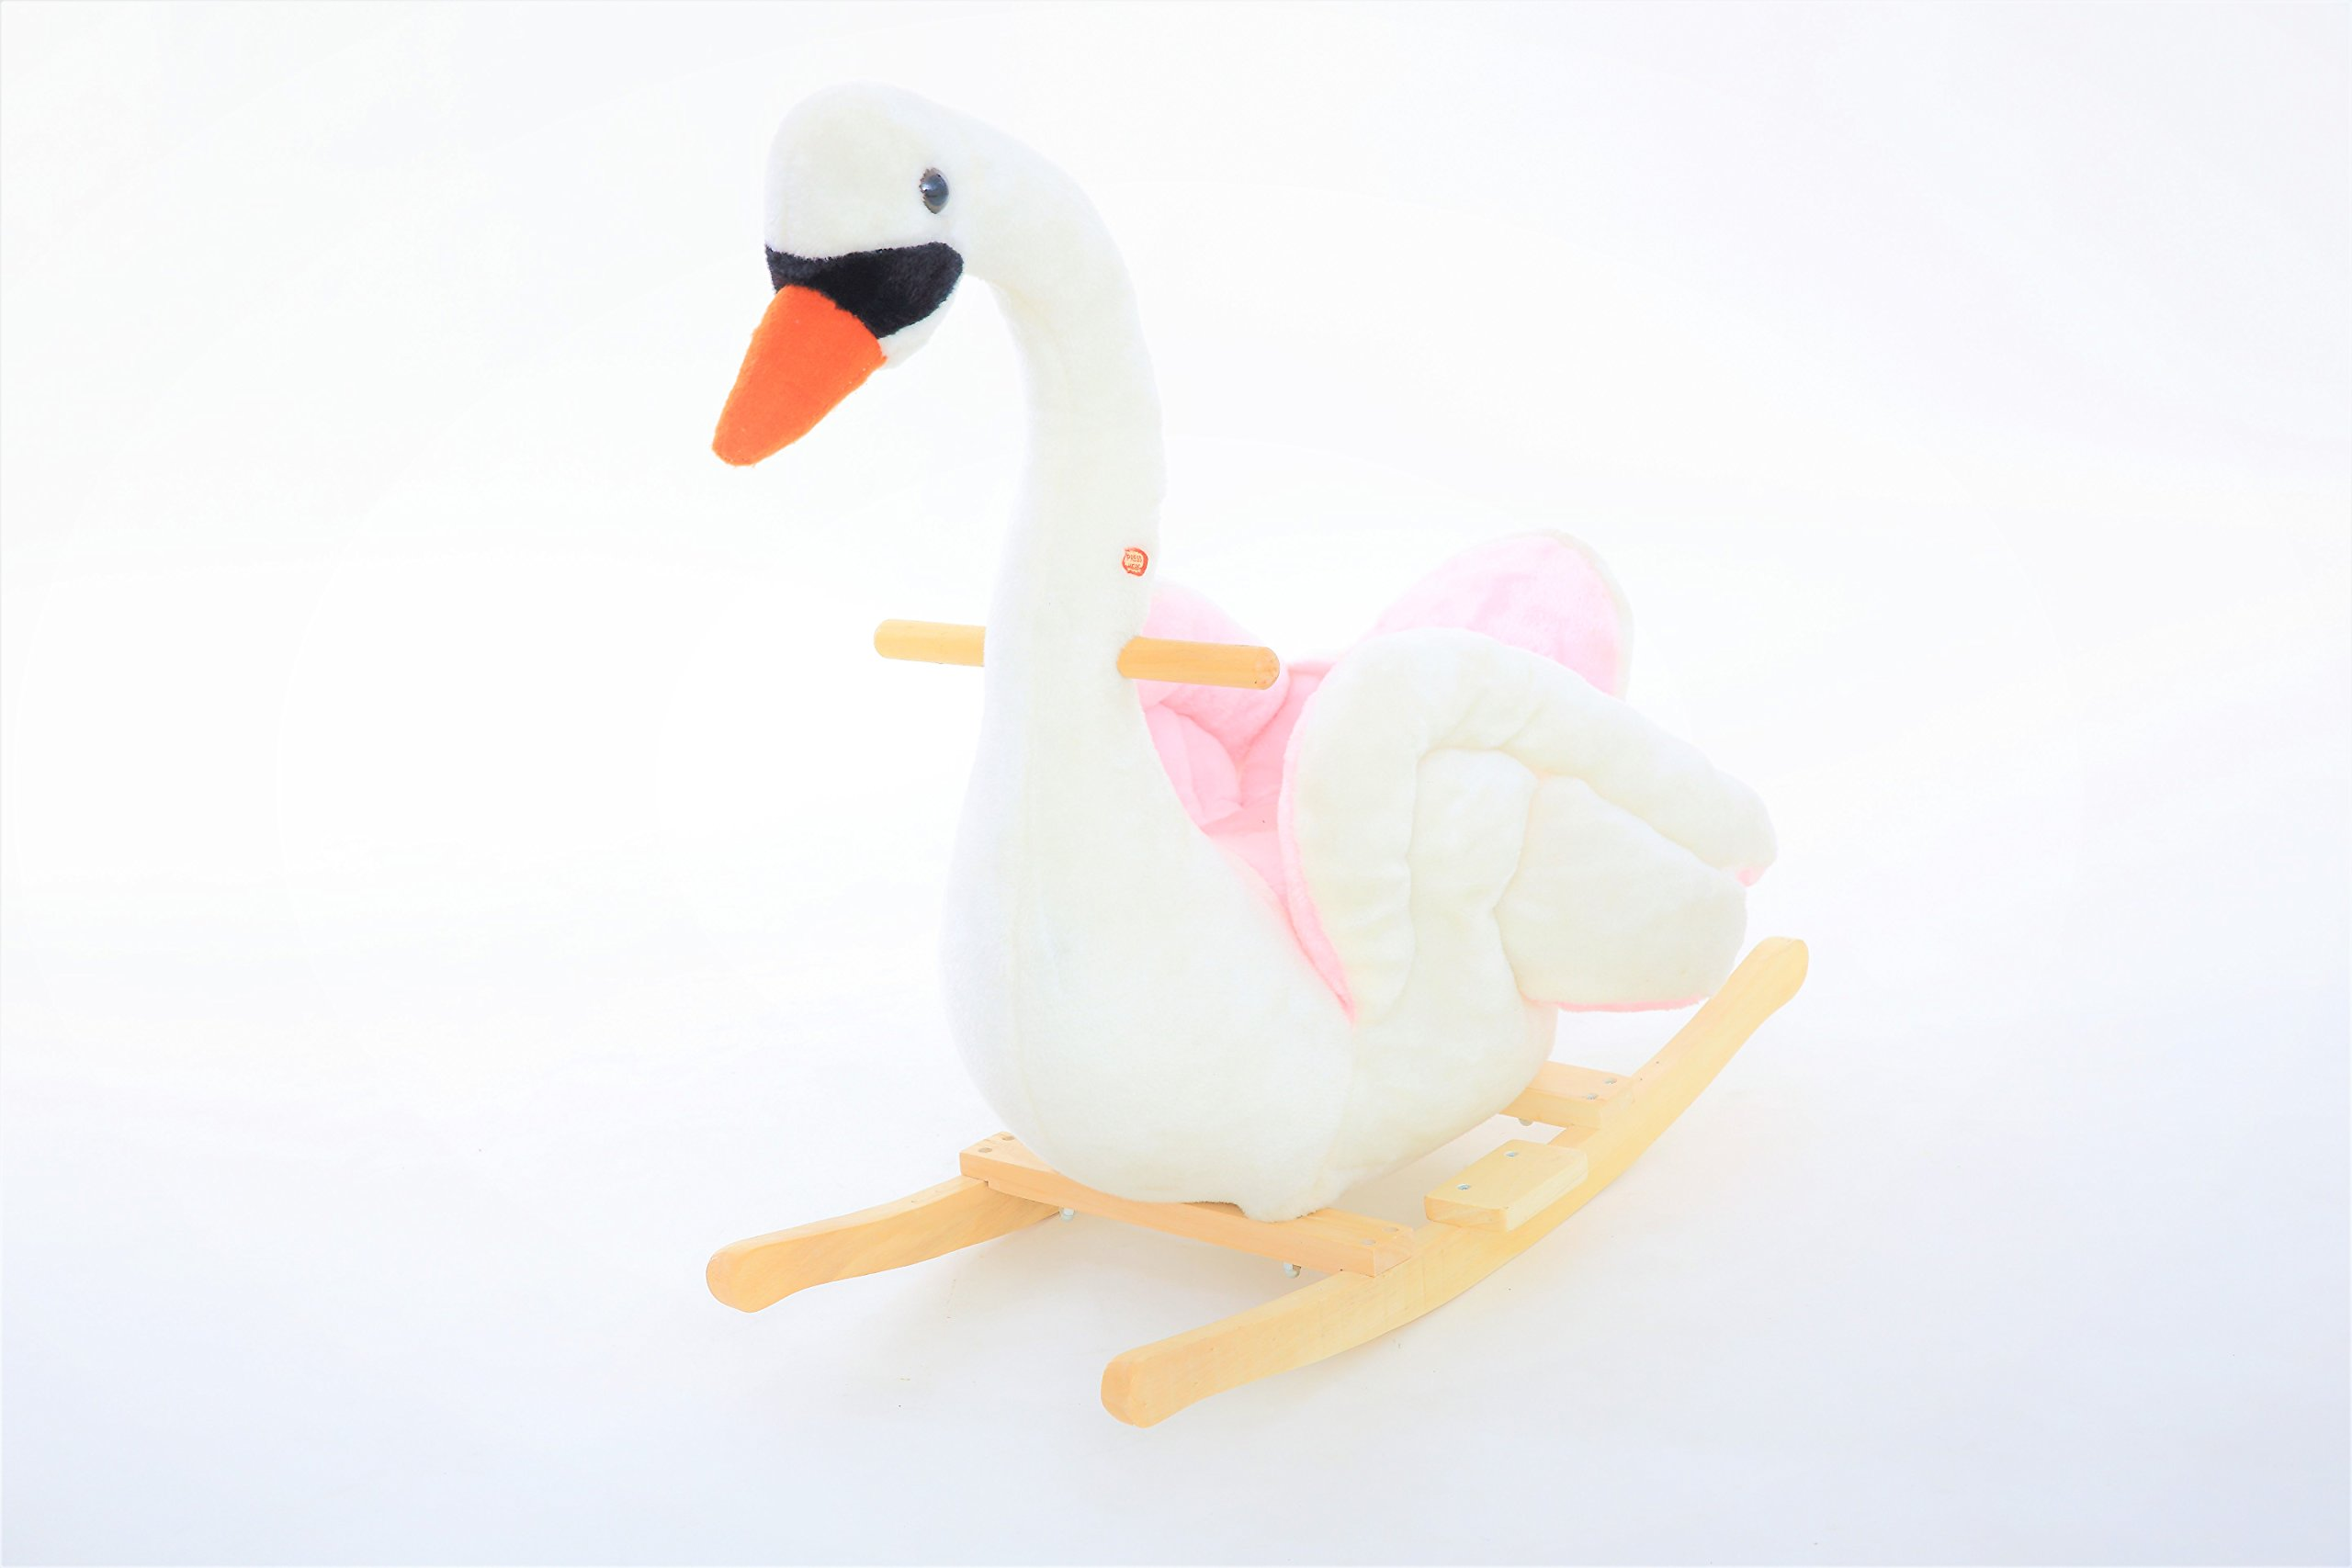 DanyBaby Ultra Soft Musical Rocking Animal Ride On Rocking Plush Swan Chair ASTM Safety Approved